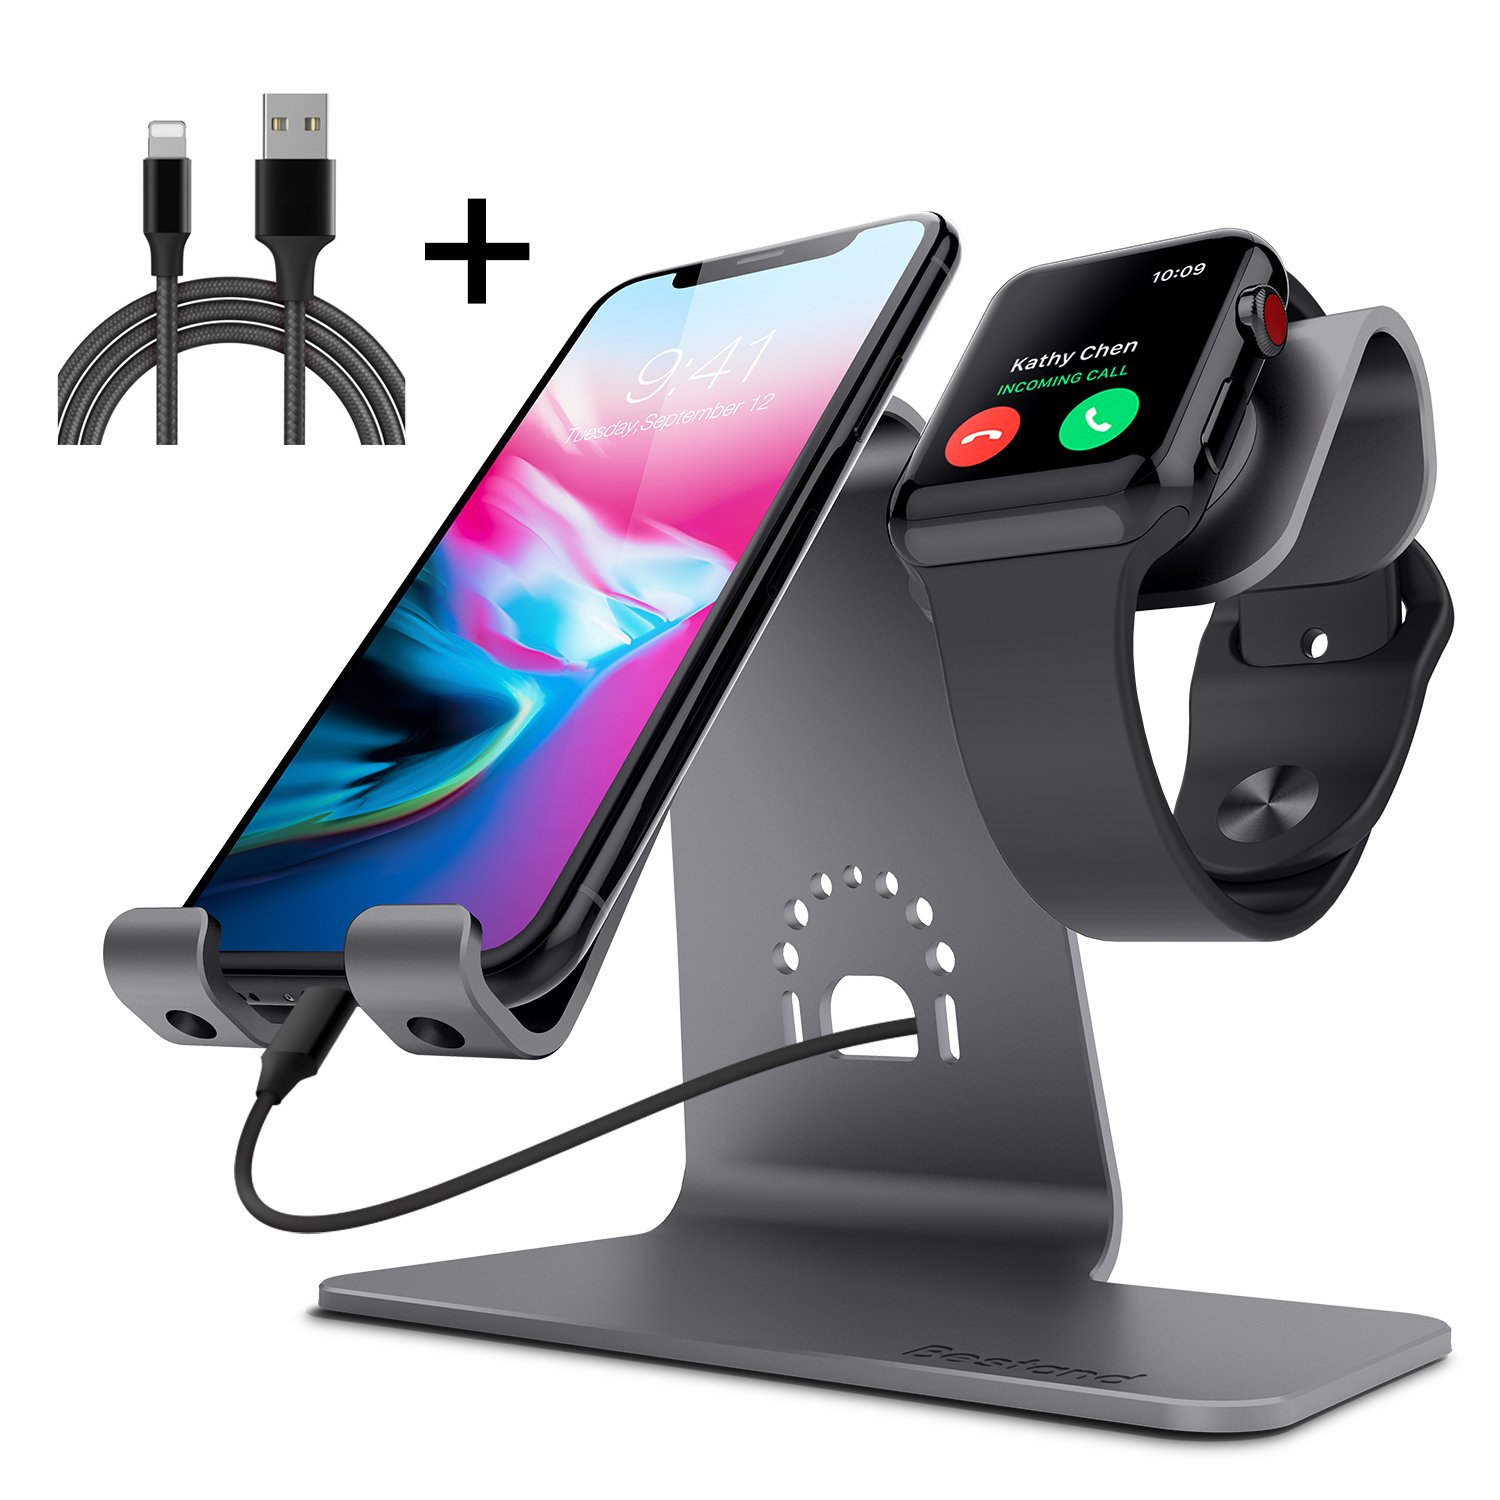 Bestand 2 in 1 Charging Stand Holder for Apple iwatch Phone Desktop Tablet Dock for Apple Watch/iPhone X/8Plus/8/7 Plus/iPad (Space Grey)